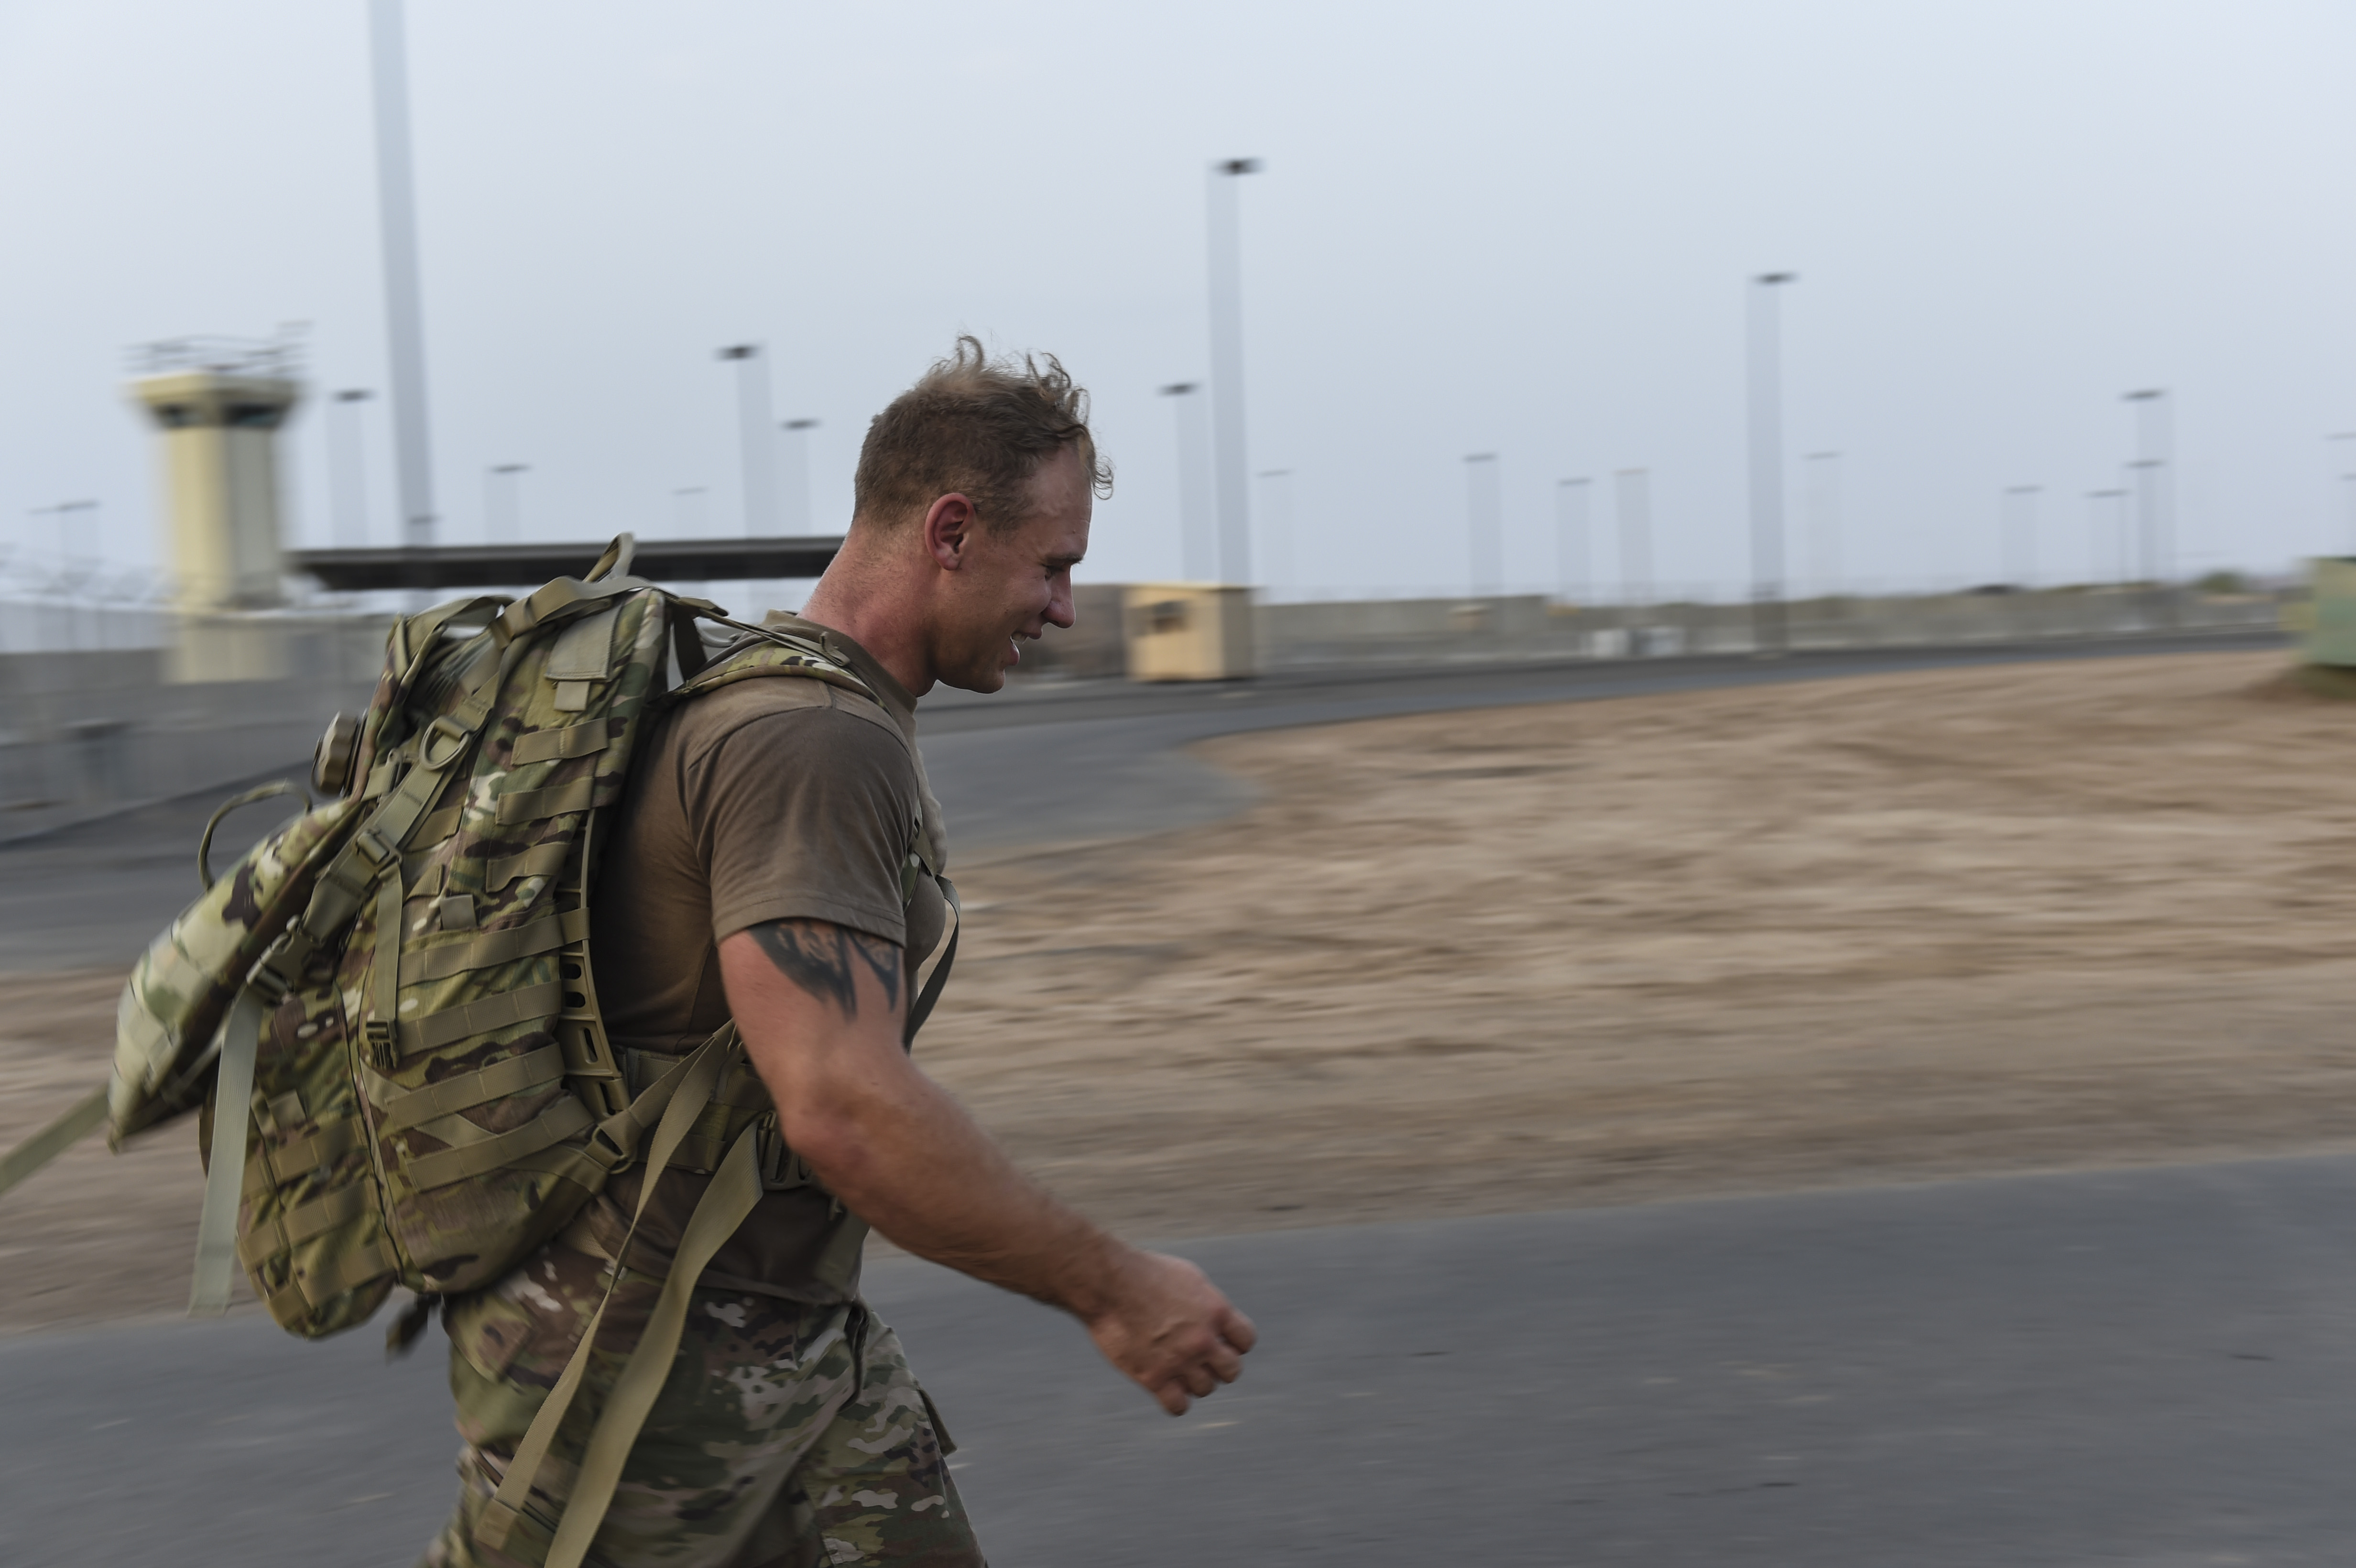 A U.S. service member participates in a ruck march during a physical training test at Camp Lemonnier, Djibouti, Aug. 5, 2017. The test was in preparation for an upcoming multi-day French Desert Commando Course that will challenge participants physically and mentally through land and water obstacles, combat scenarios and extreme endurance exercises while surviving in austere field conditions. (U.S. Air Force photo by Staff Sgt. Eboni Prince)